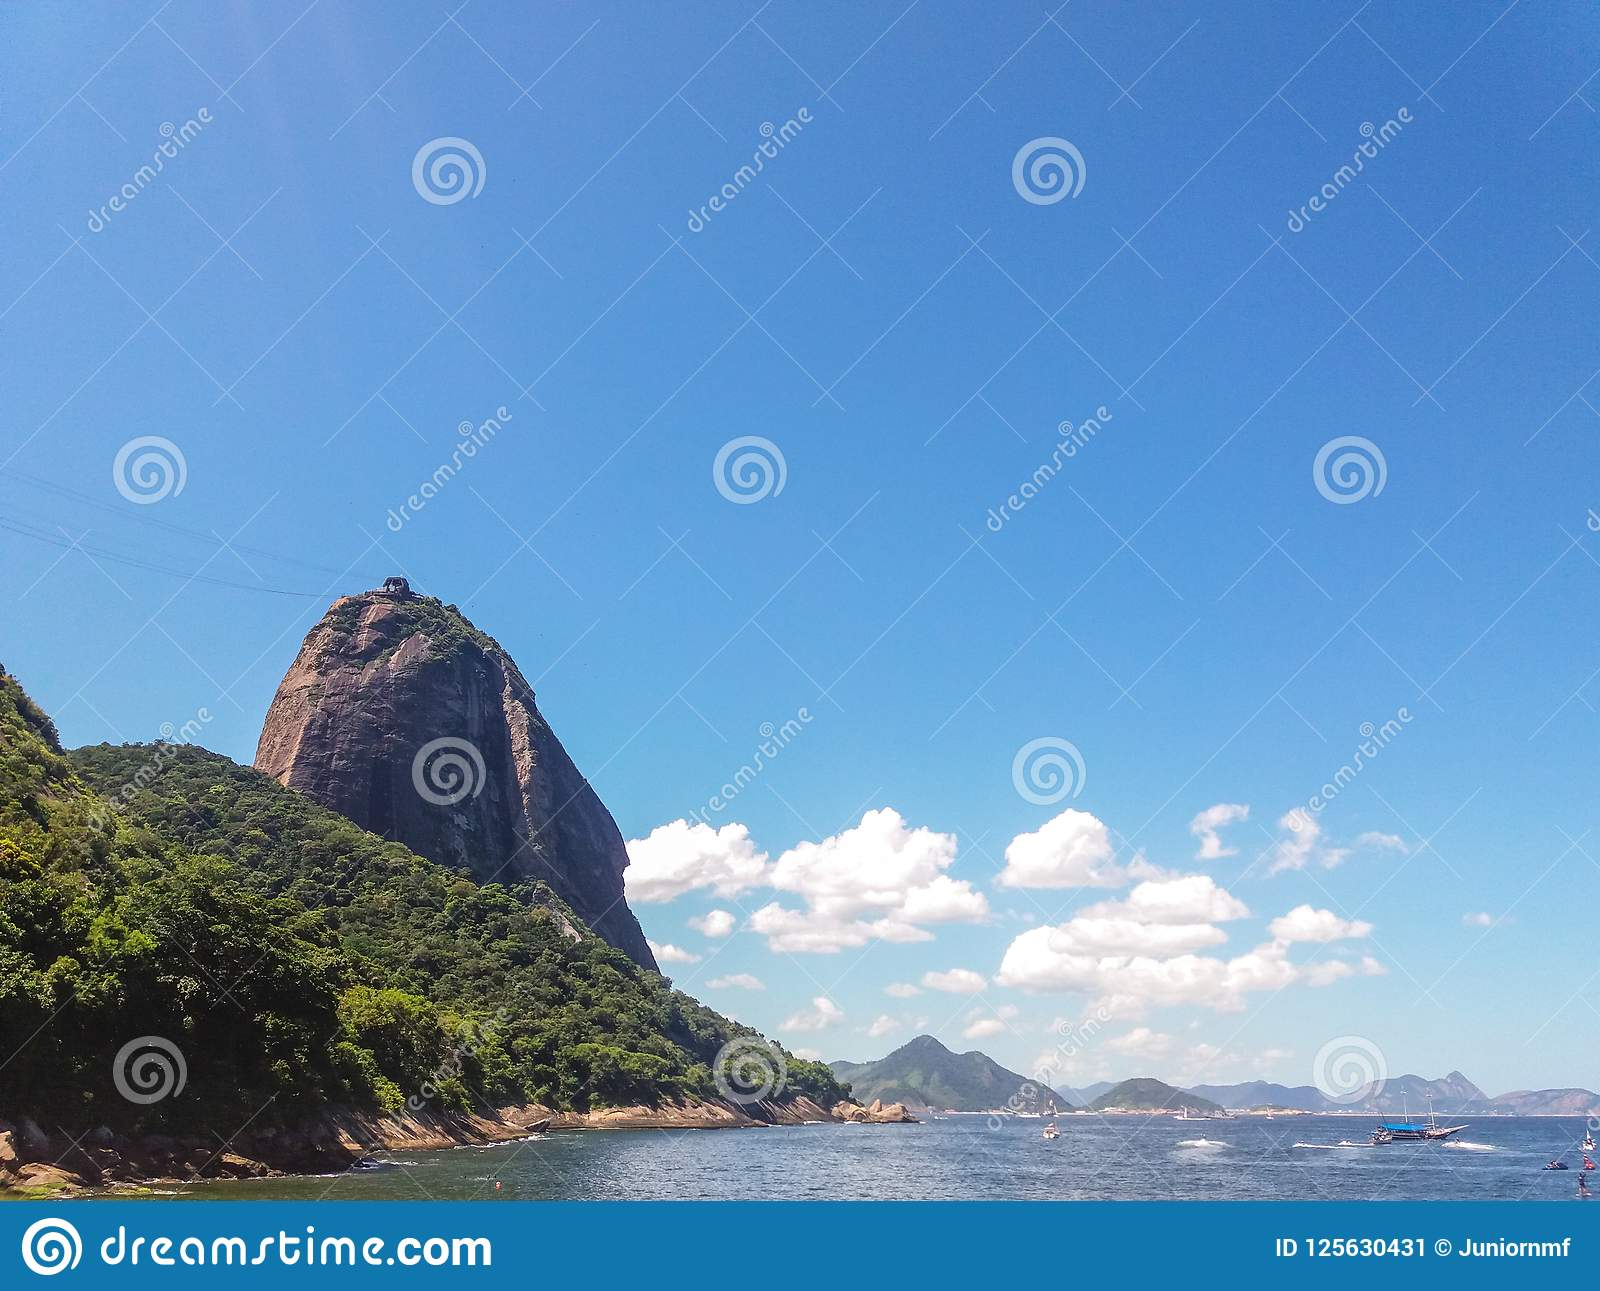 Beaches mountains and city of Rio de Janeiro in Brazil